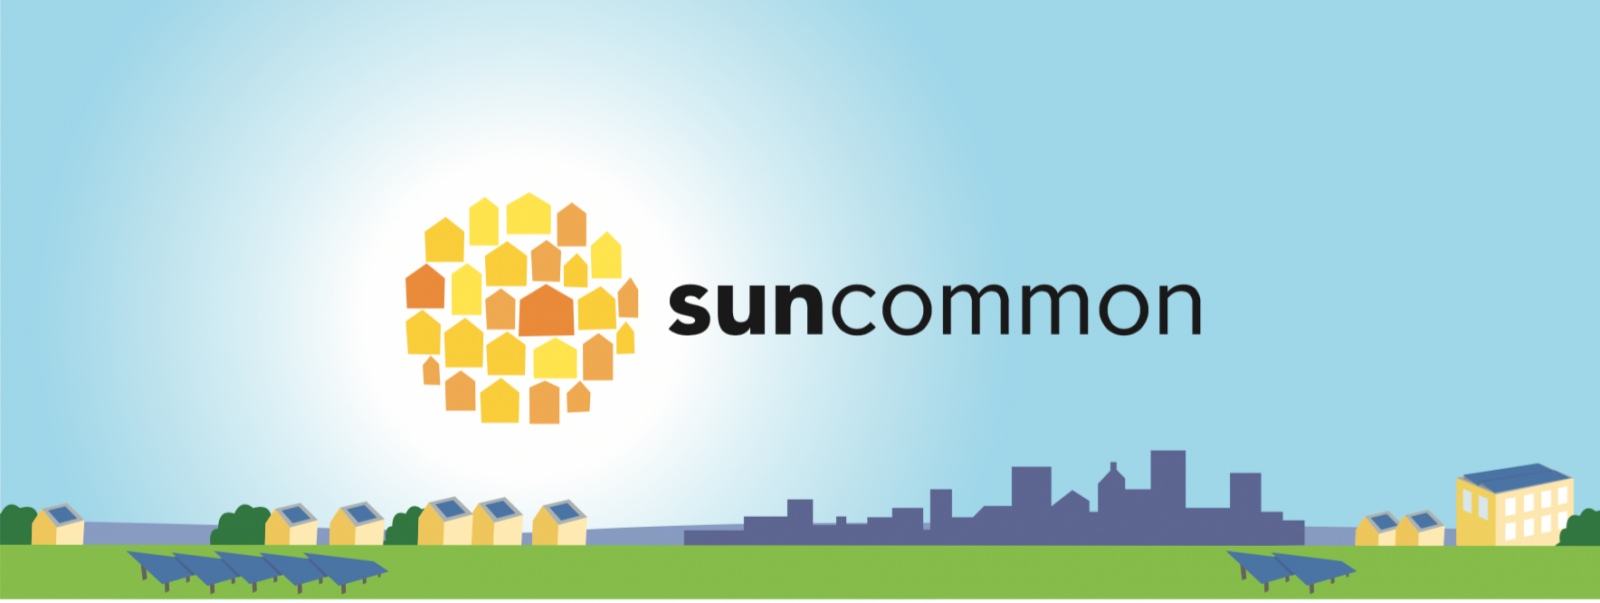 SunCommon NY Facebook Cover Photo